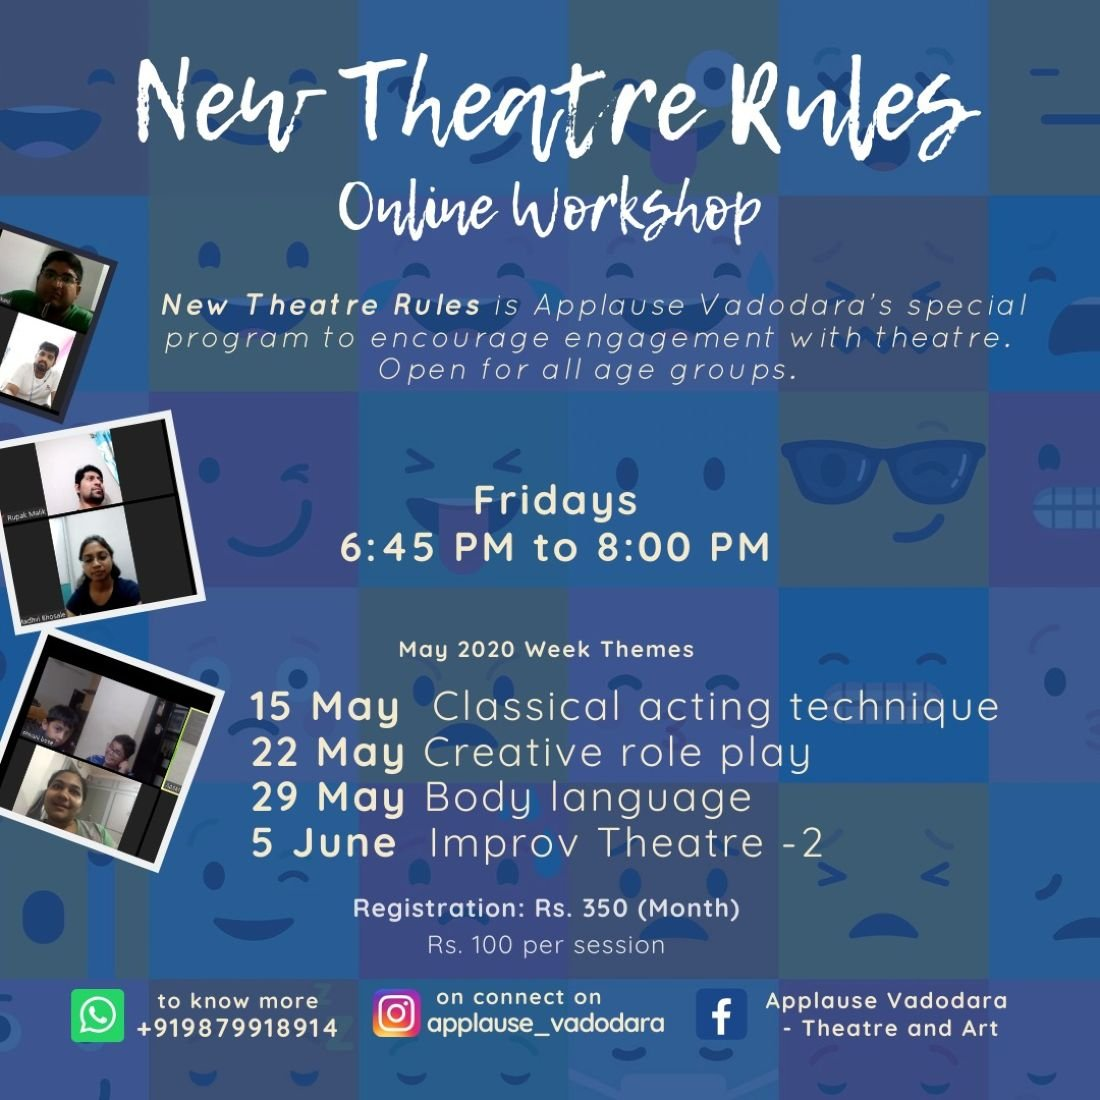 New Theatre Rules - Online Theatre Workshop